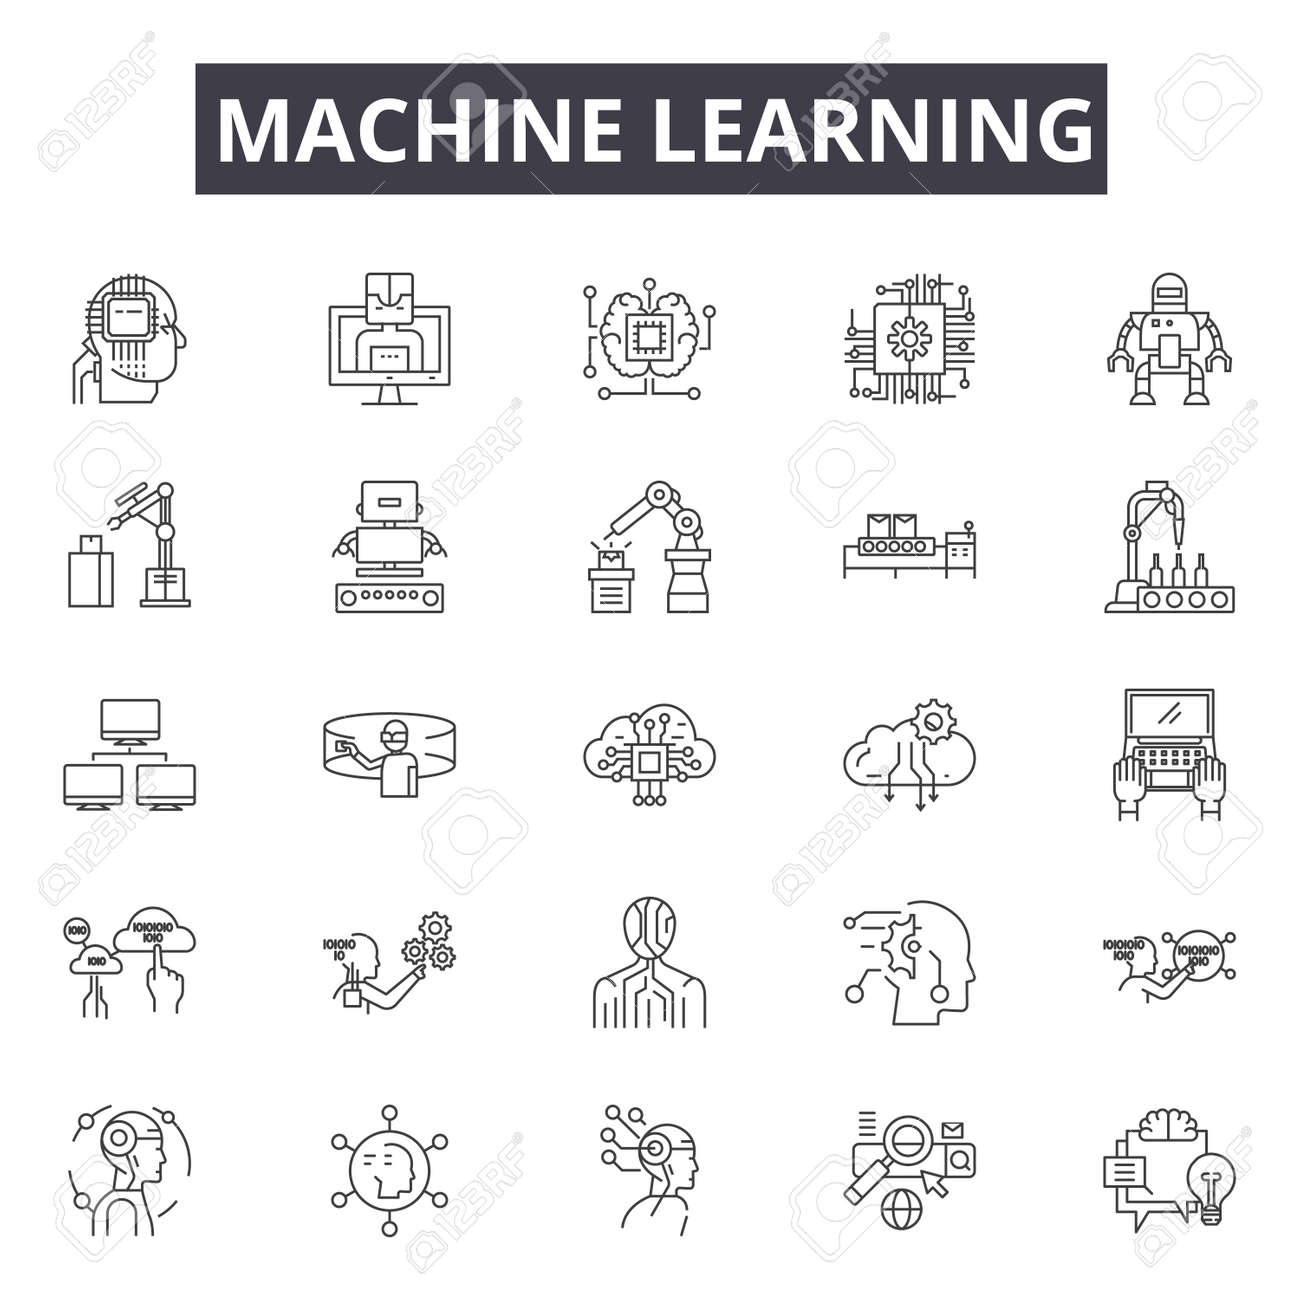 Machine learning system line icons, signs set, vector. Machine learning system outline concept illustration: system,data,technology,machine,intelligence,learning,science,information,business - 120896876